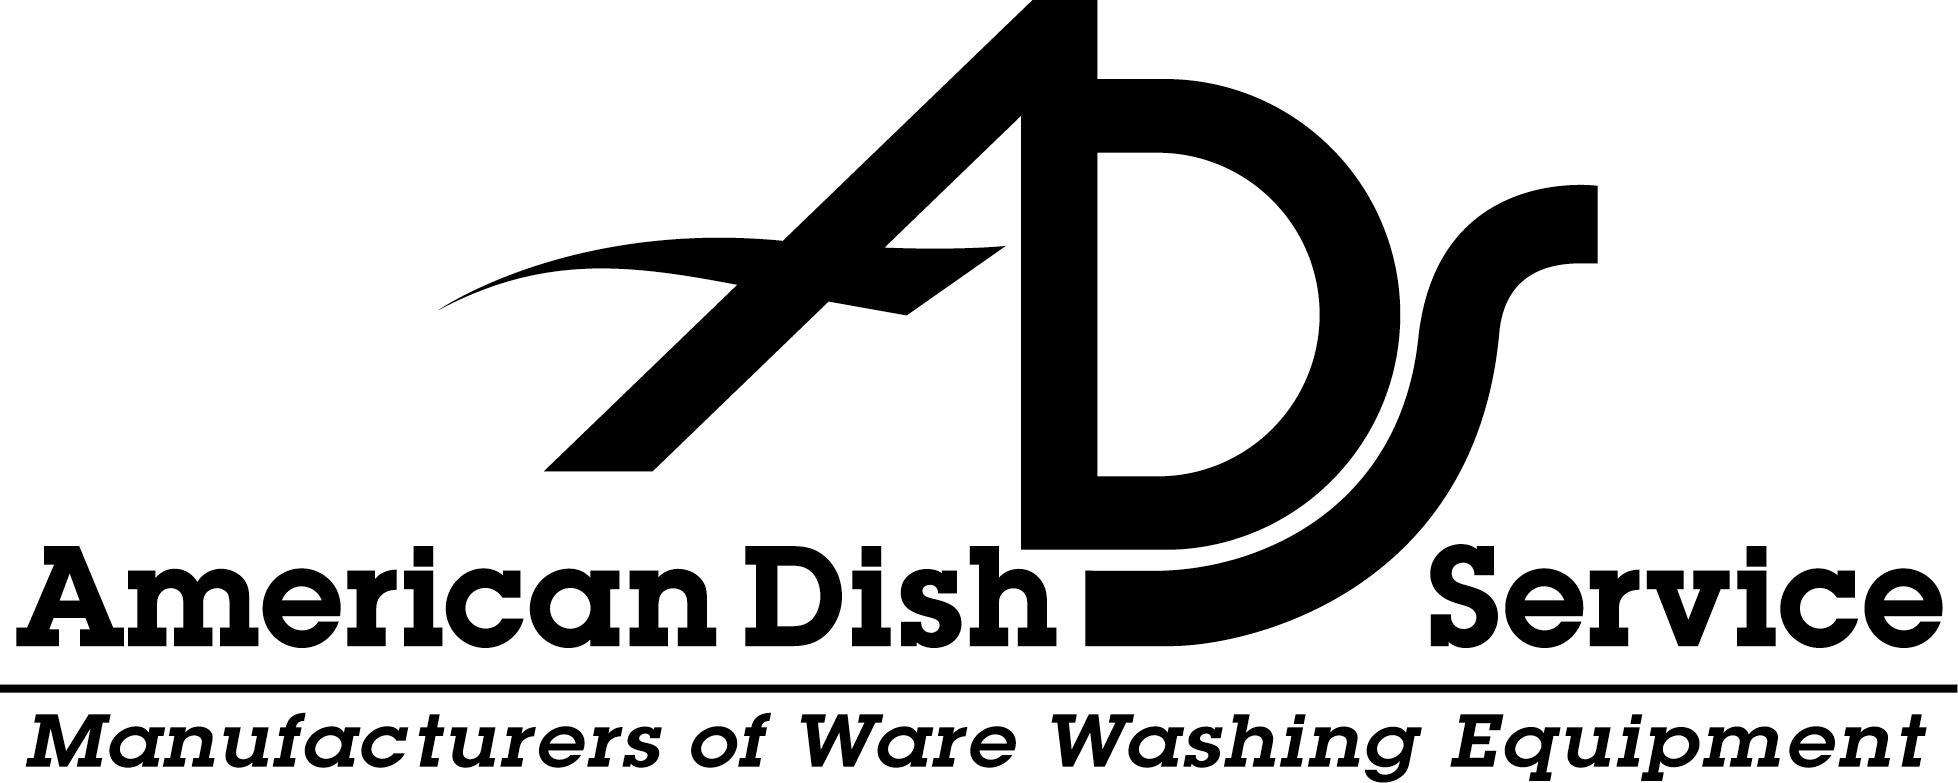 American Dish Service: Experts in commercial dishwashing